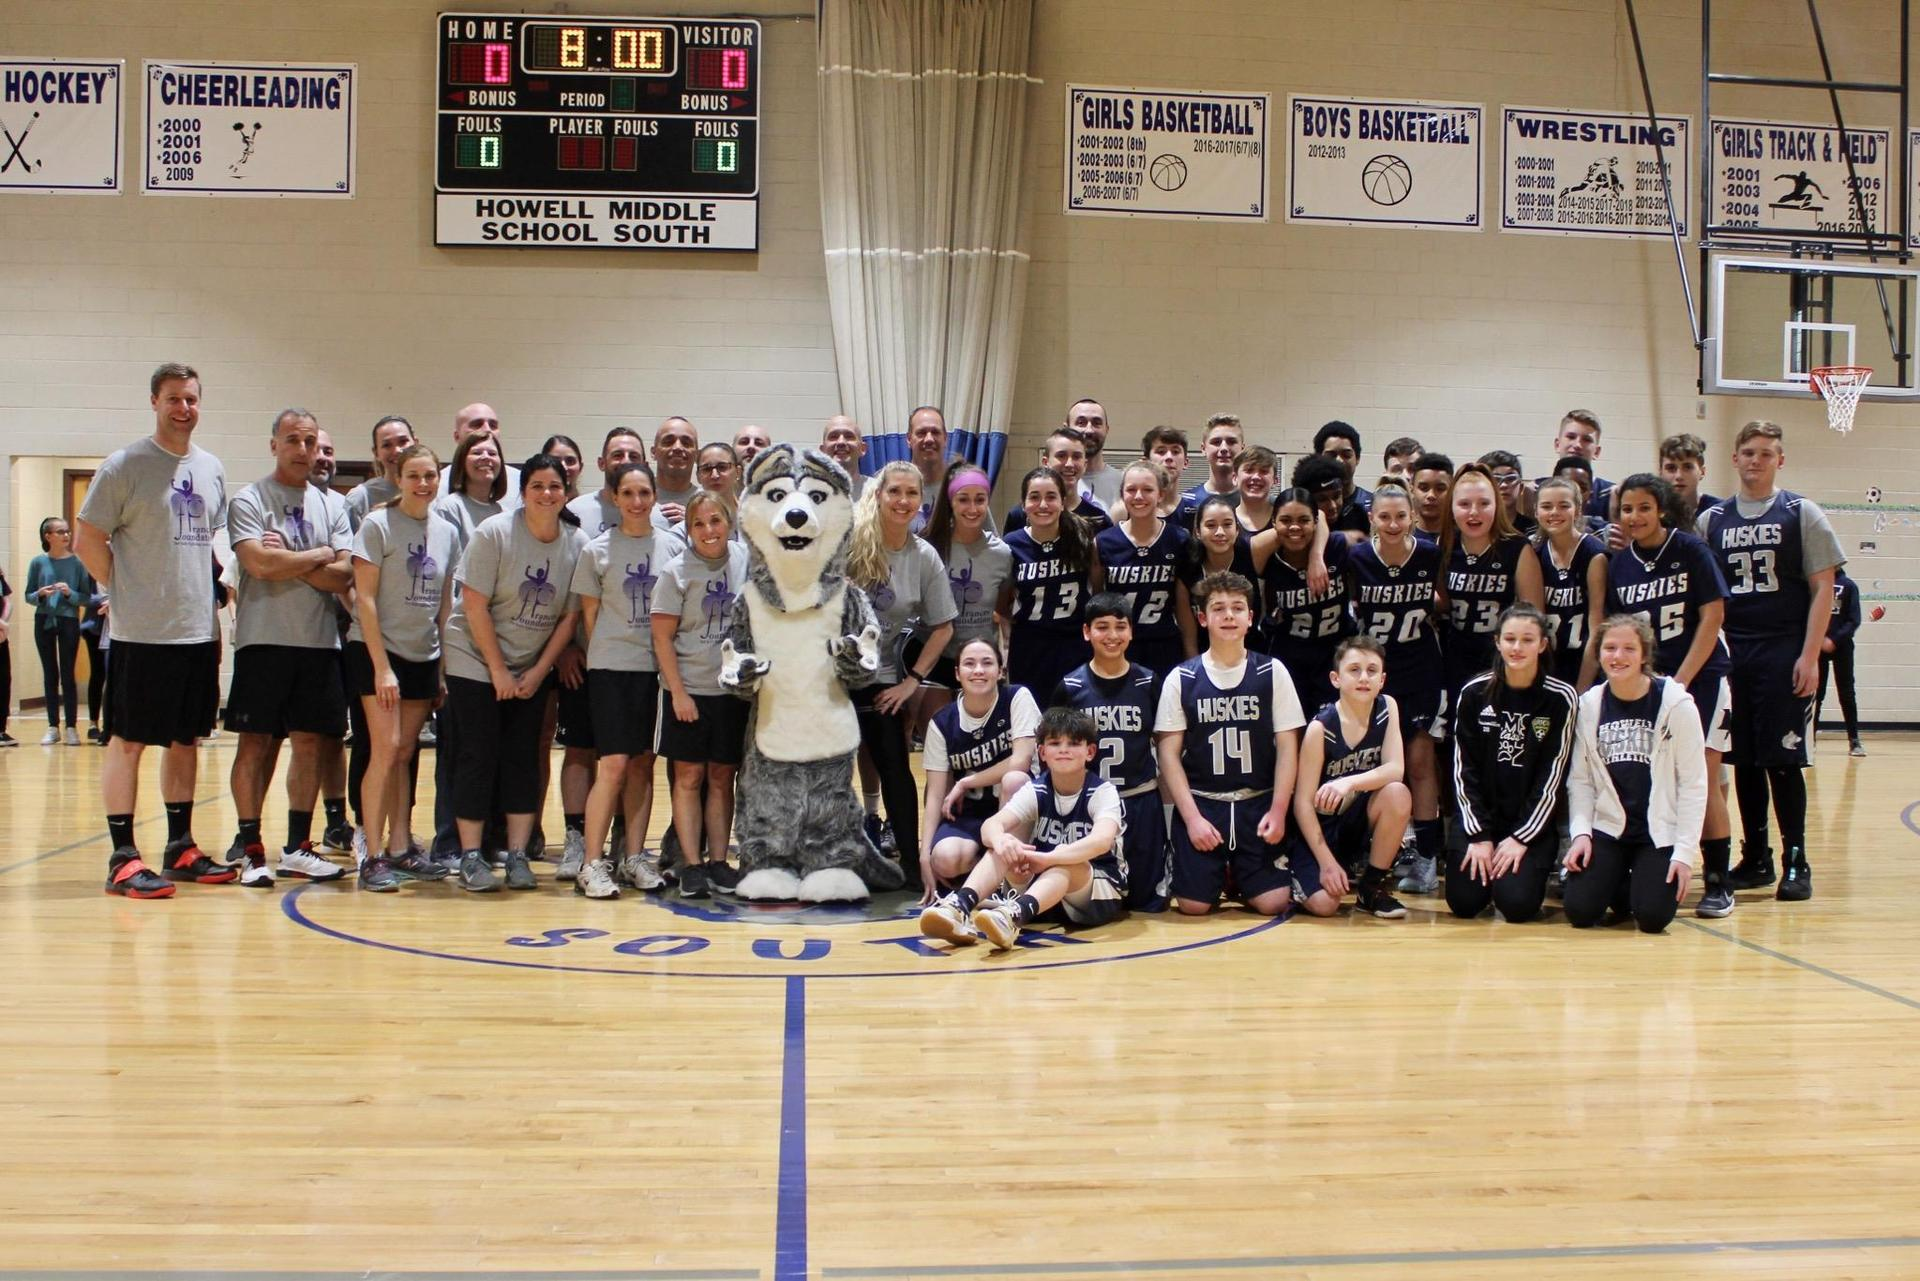 Student vs. Faculty Game